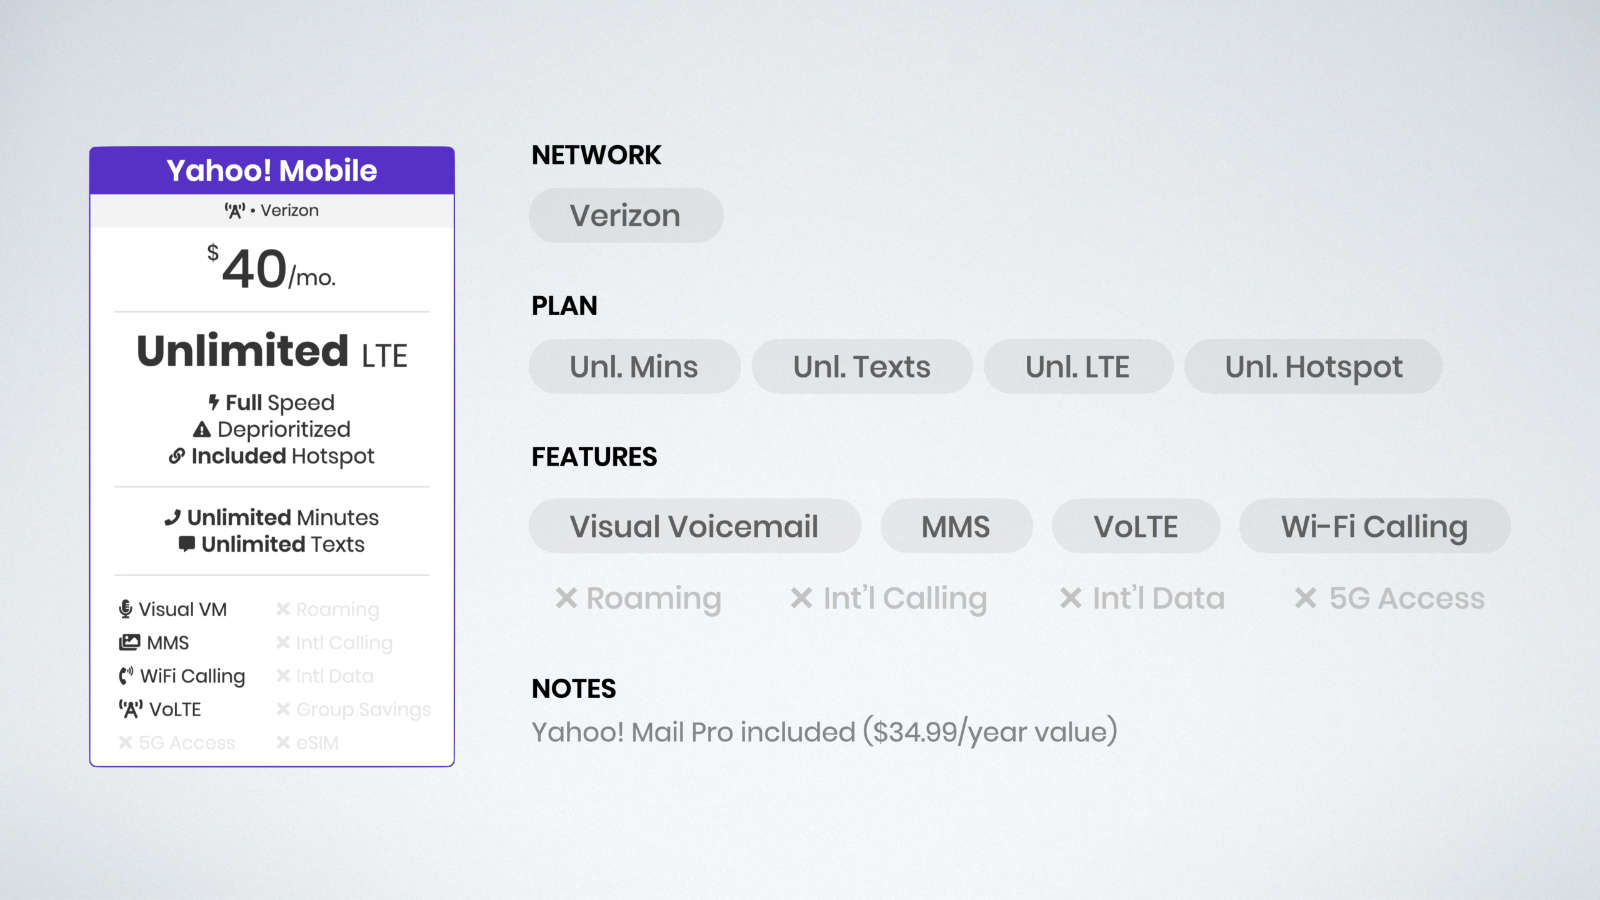 Yahoo Mobile plan features